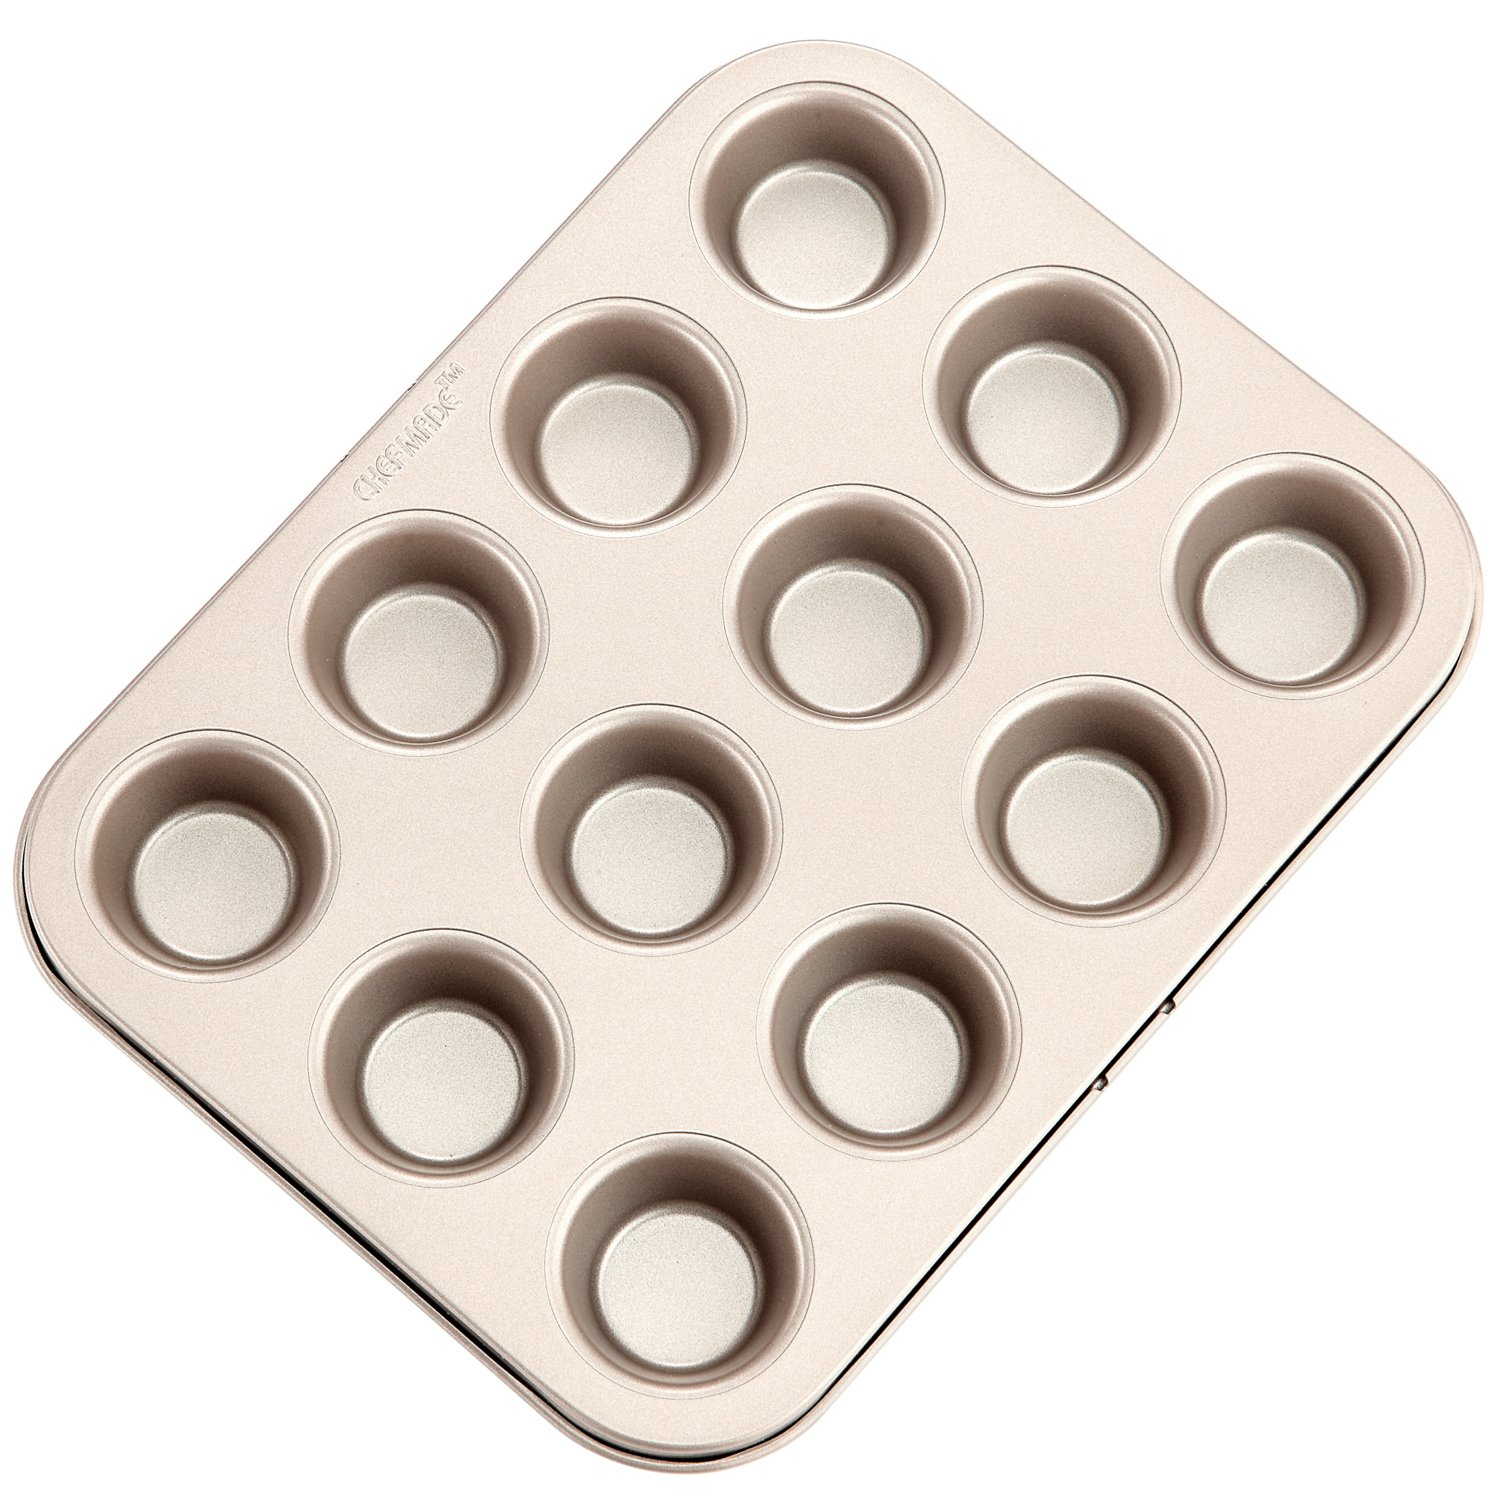 CHEFMADE Mini Muffin Pan, 12-Cavity Non-Stick Mini Cupcake Pan Bakeware, FDA Approved for Oven Baking (Champagne Gold)